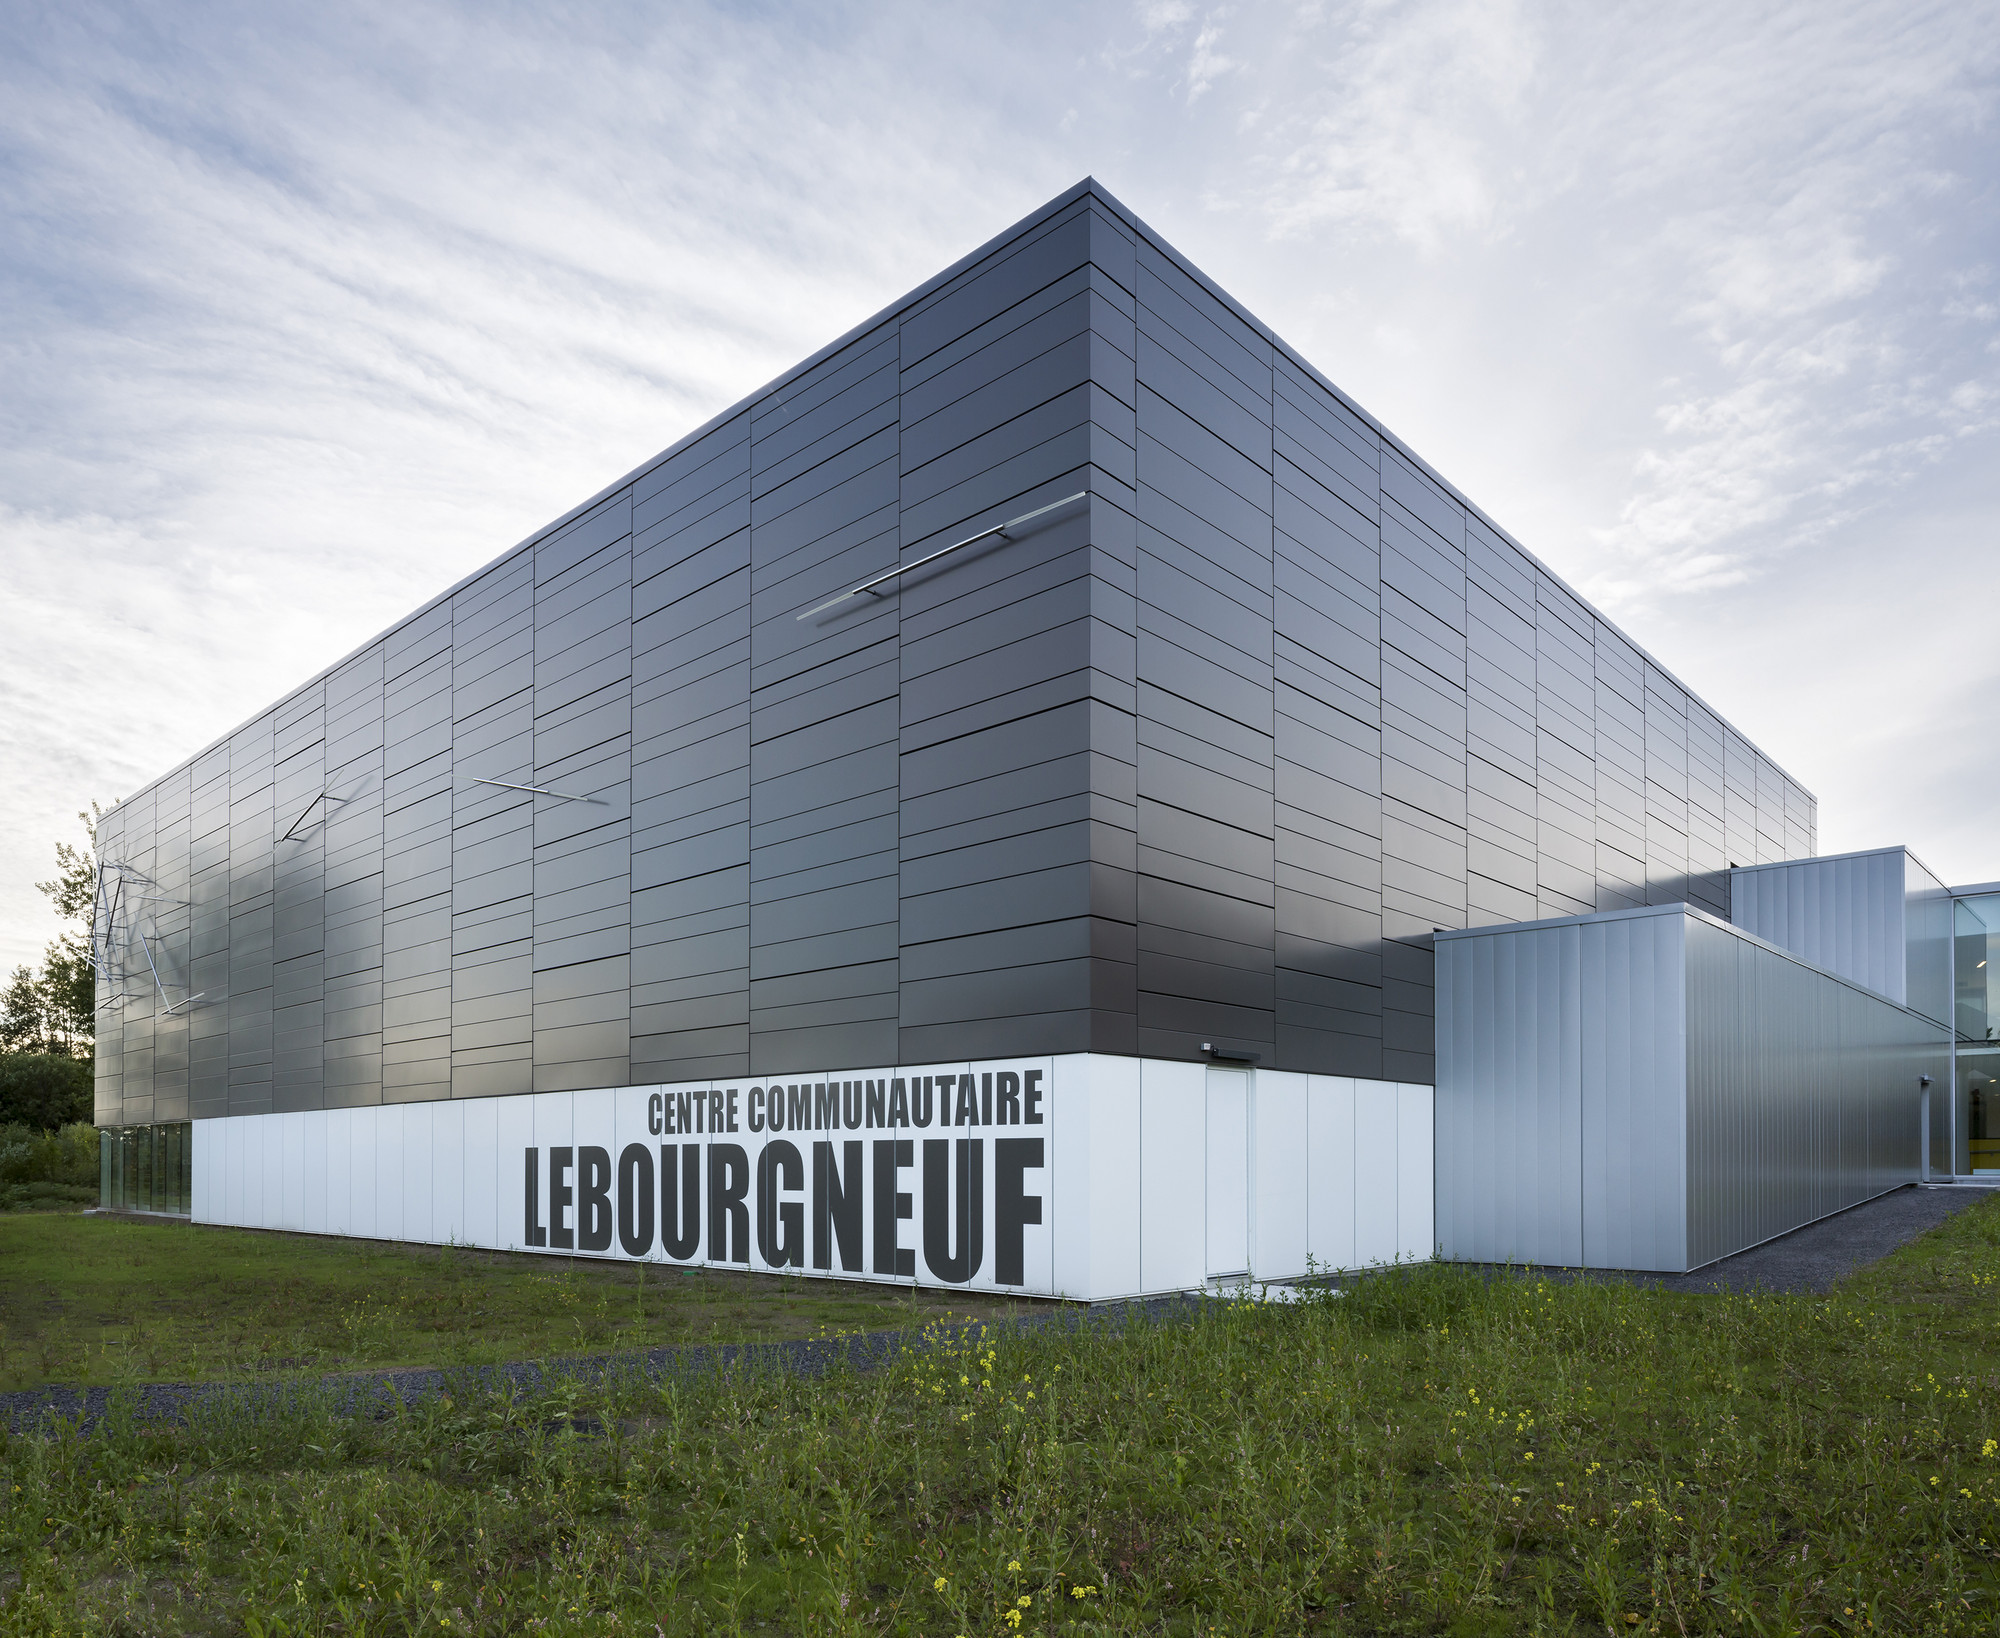 Lebourgneuf community center ccm2 architectes archdaily for Architecture quebec